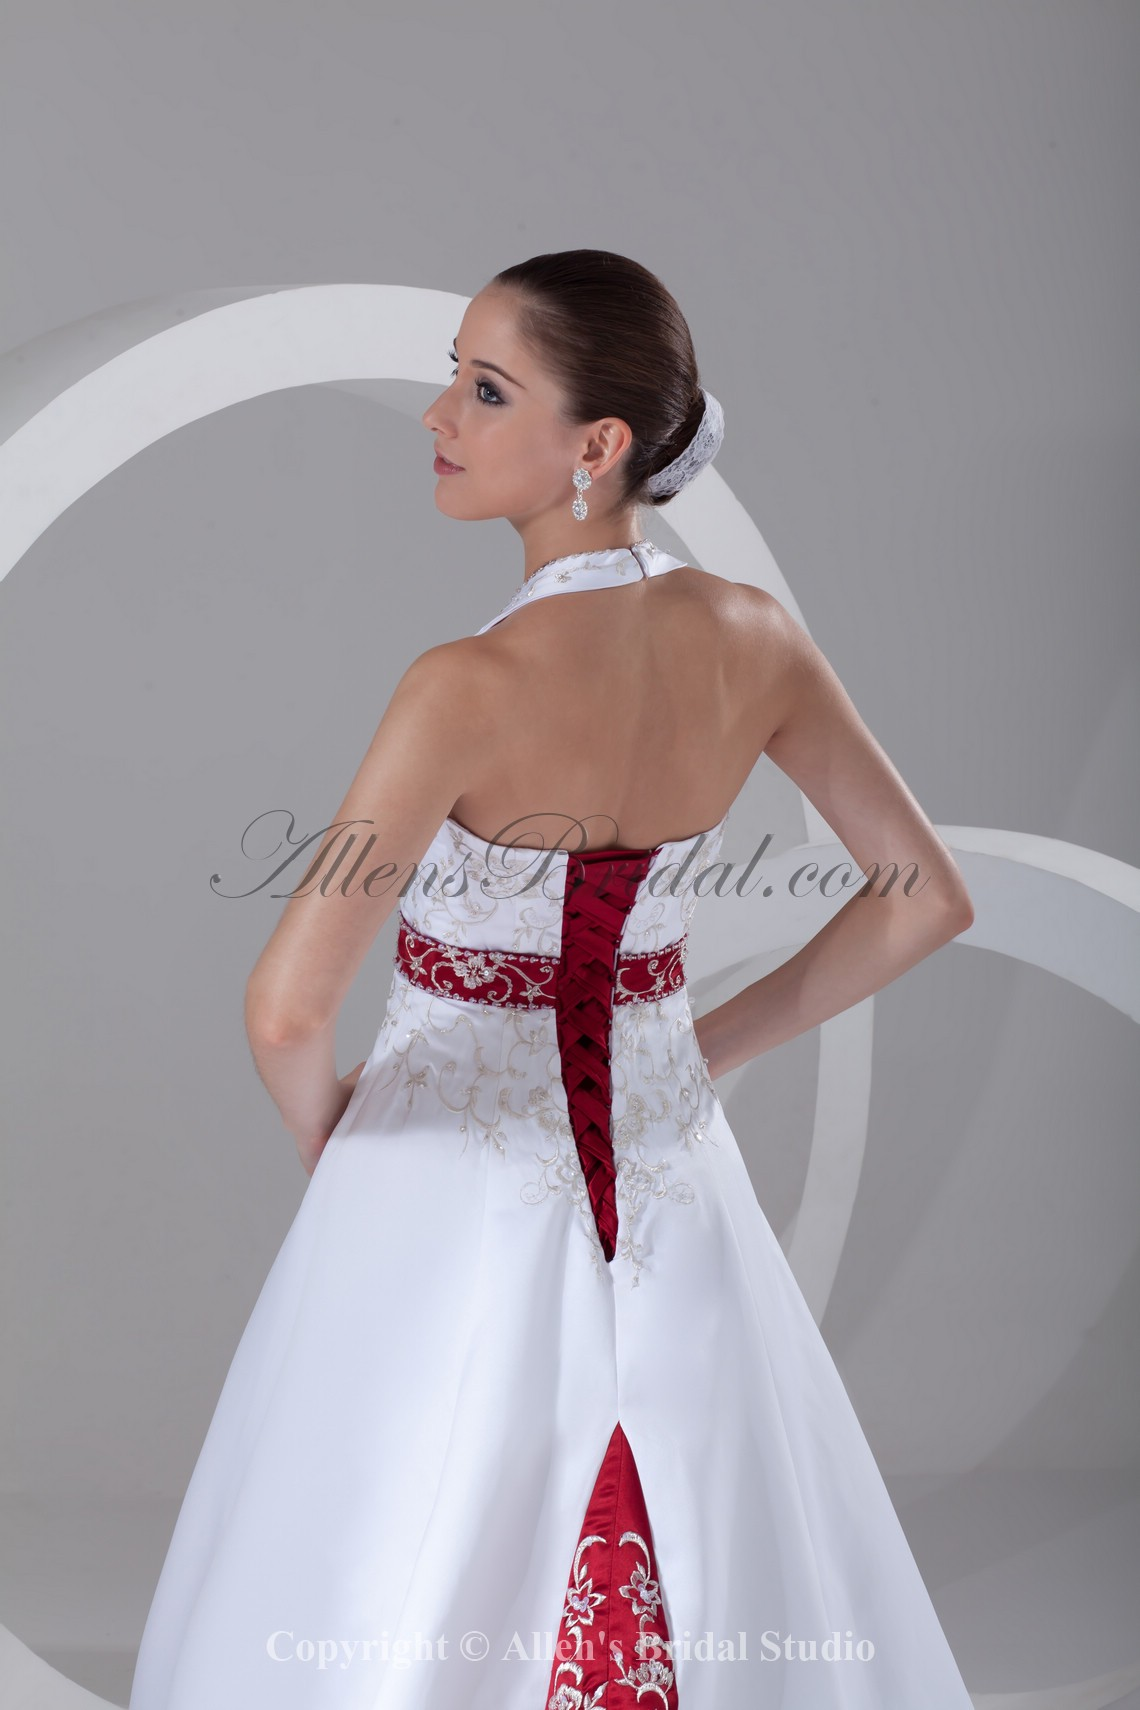 /905-7258/satin-halter-neckline-chapel-train-a-line-embroidered-wedding-dress.jpg